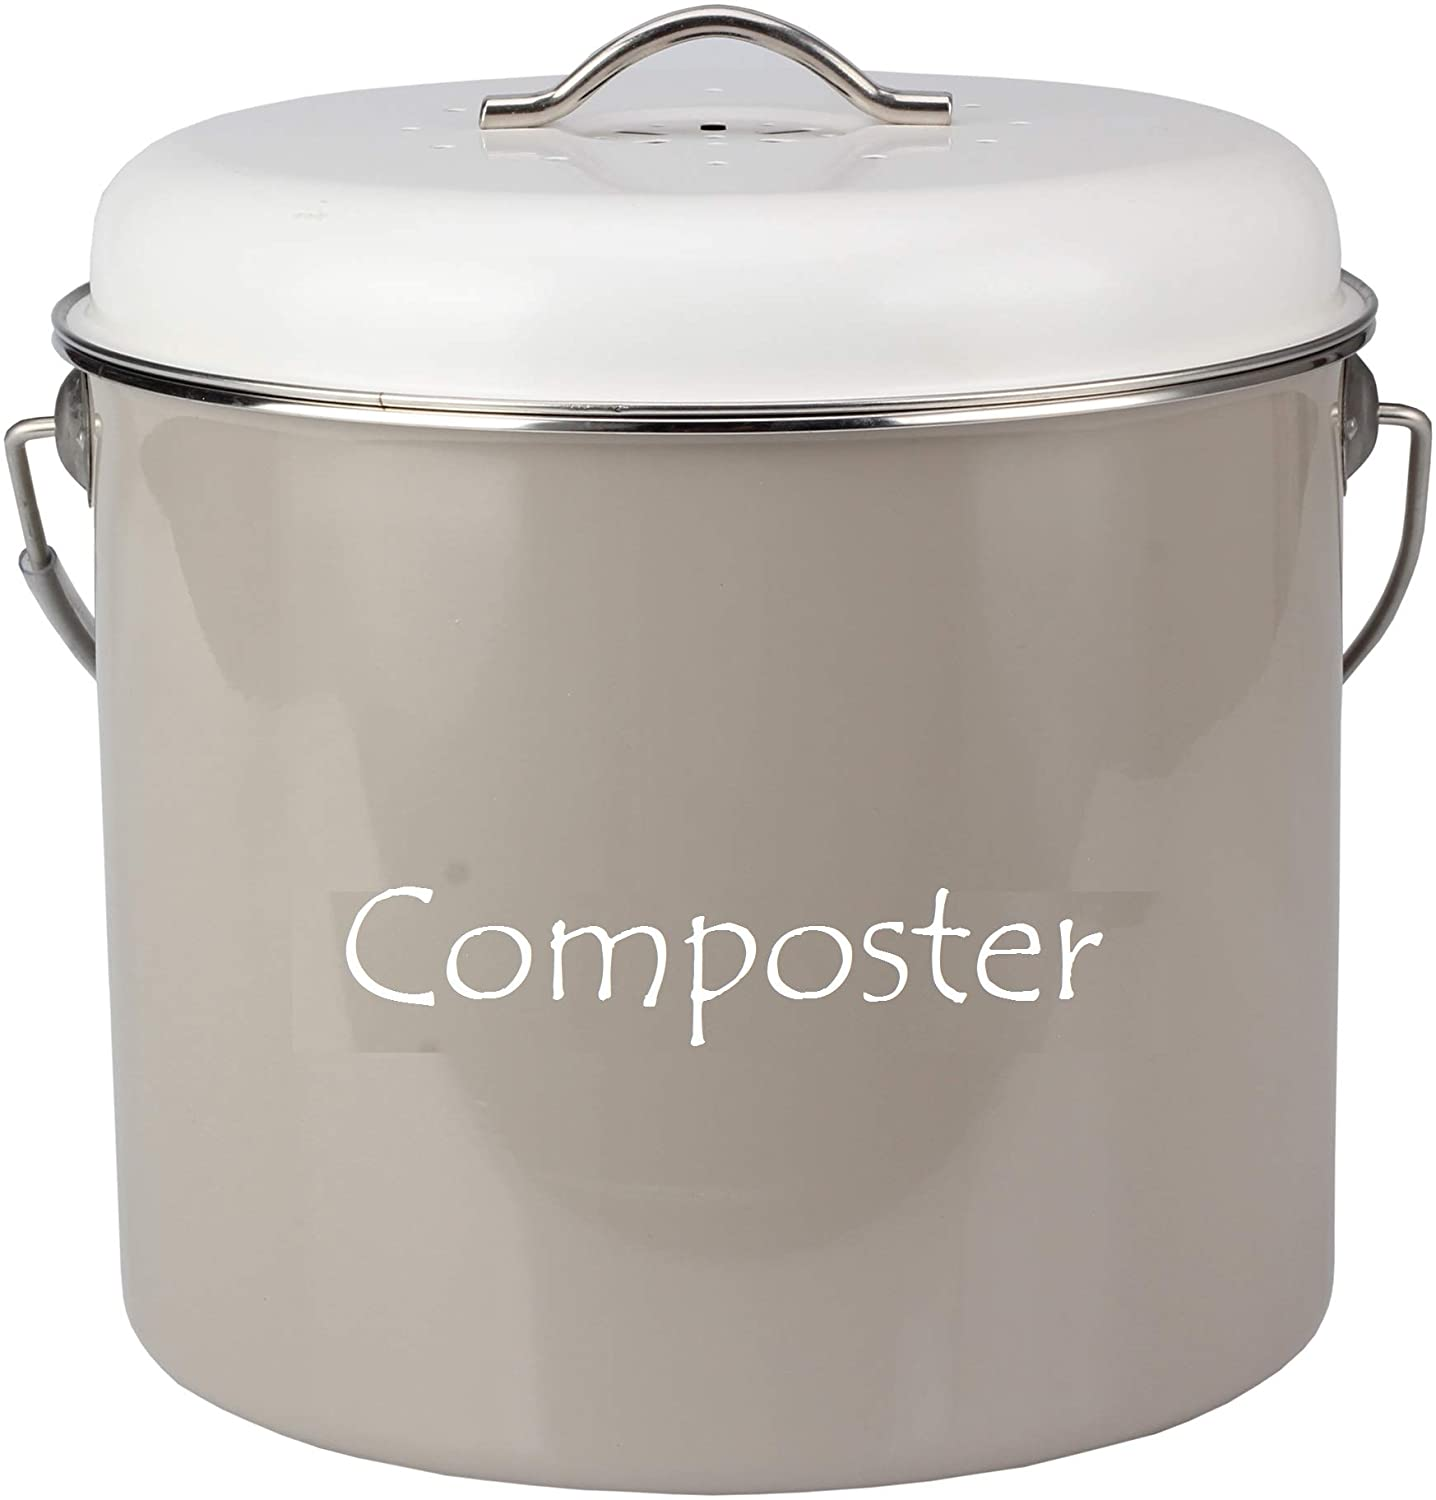 HeAndy Compost Bucket for Kitchen Food Scraps - Cream Countertop Compost Bin with Lid & 4 Filters Locks Odors in - Vintage Metal Composters Bins Kitchen - 1.3 gal